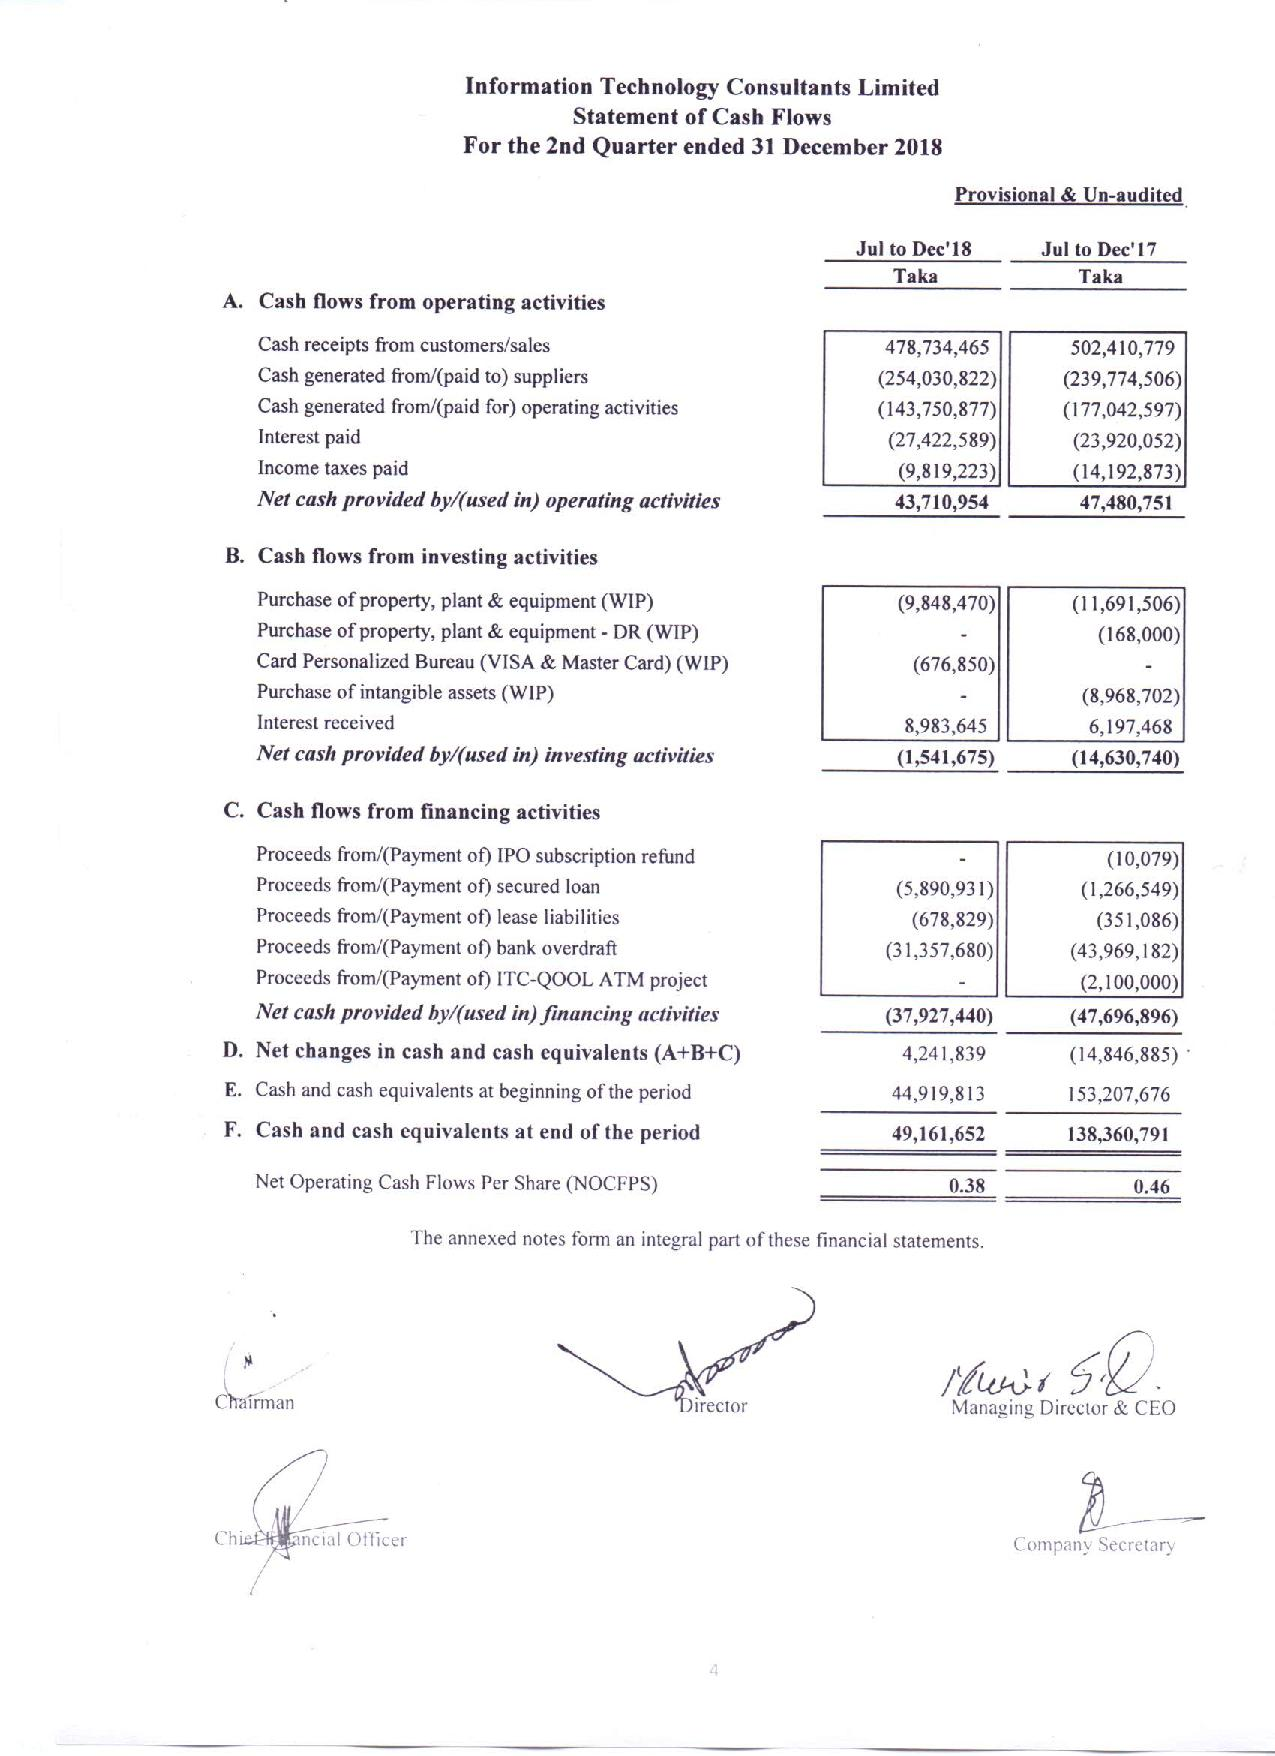 2nd Quarterly Financial Statements of ITC-page-005